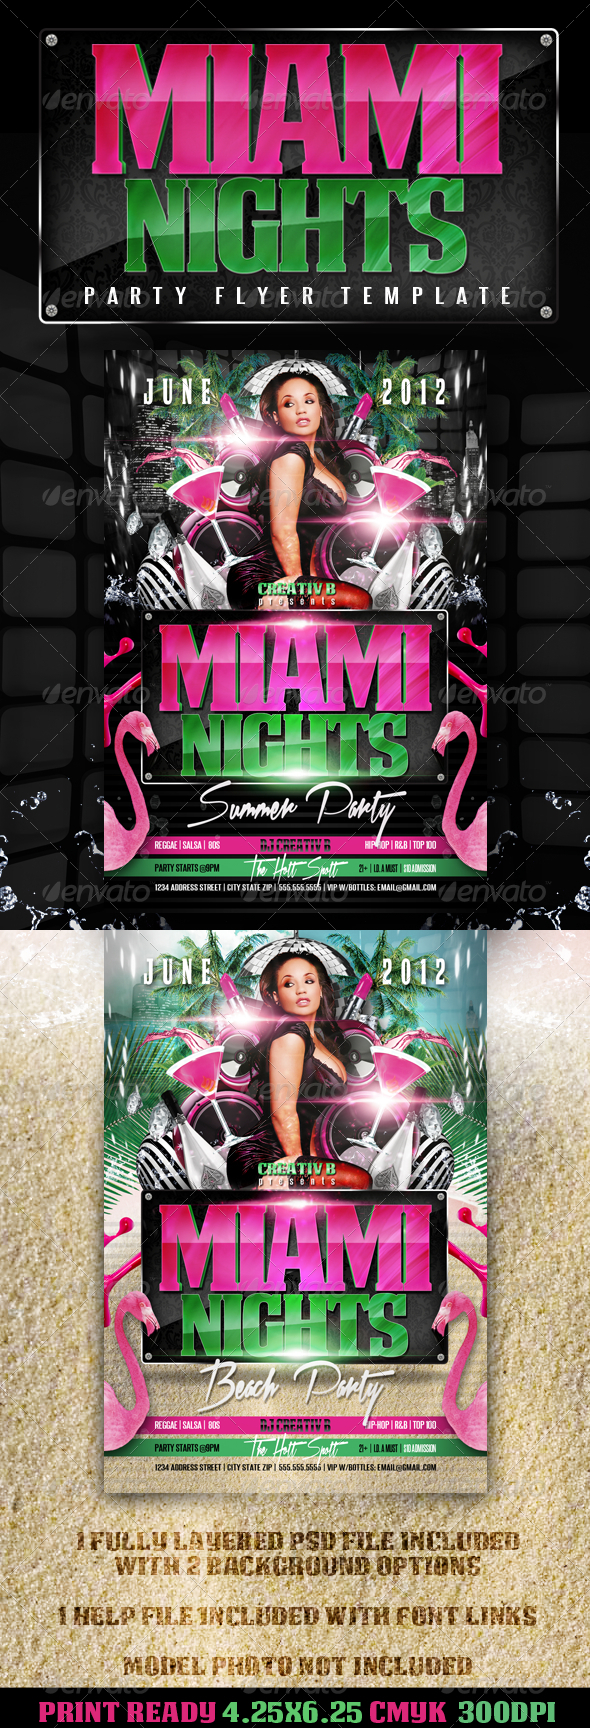 Miami Nights Party Flyer Template - Clubs & Parties Events